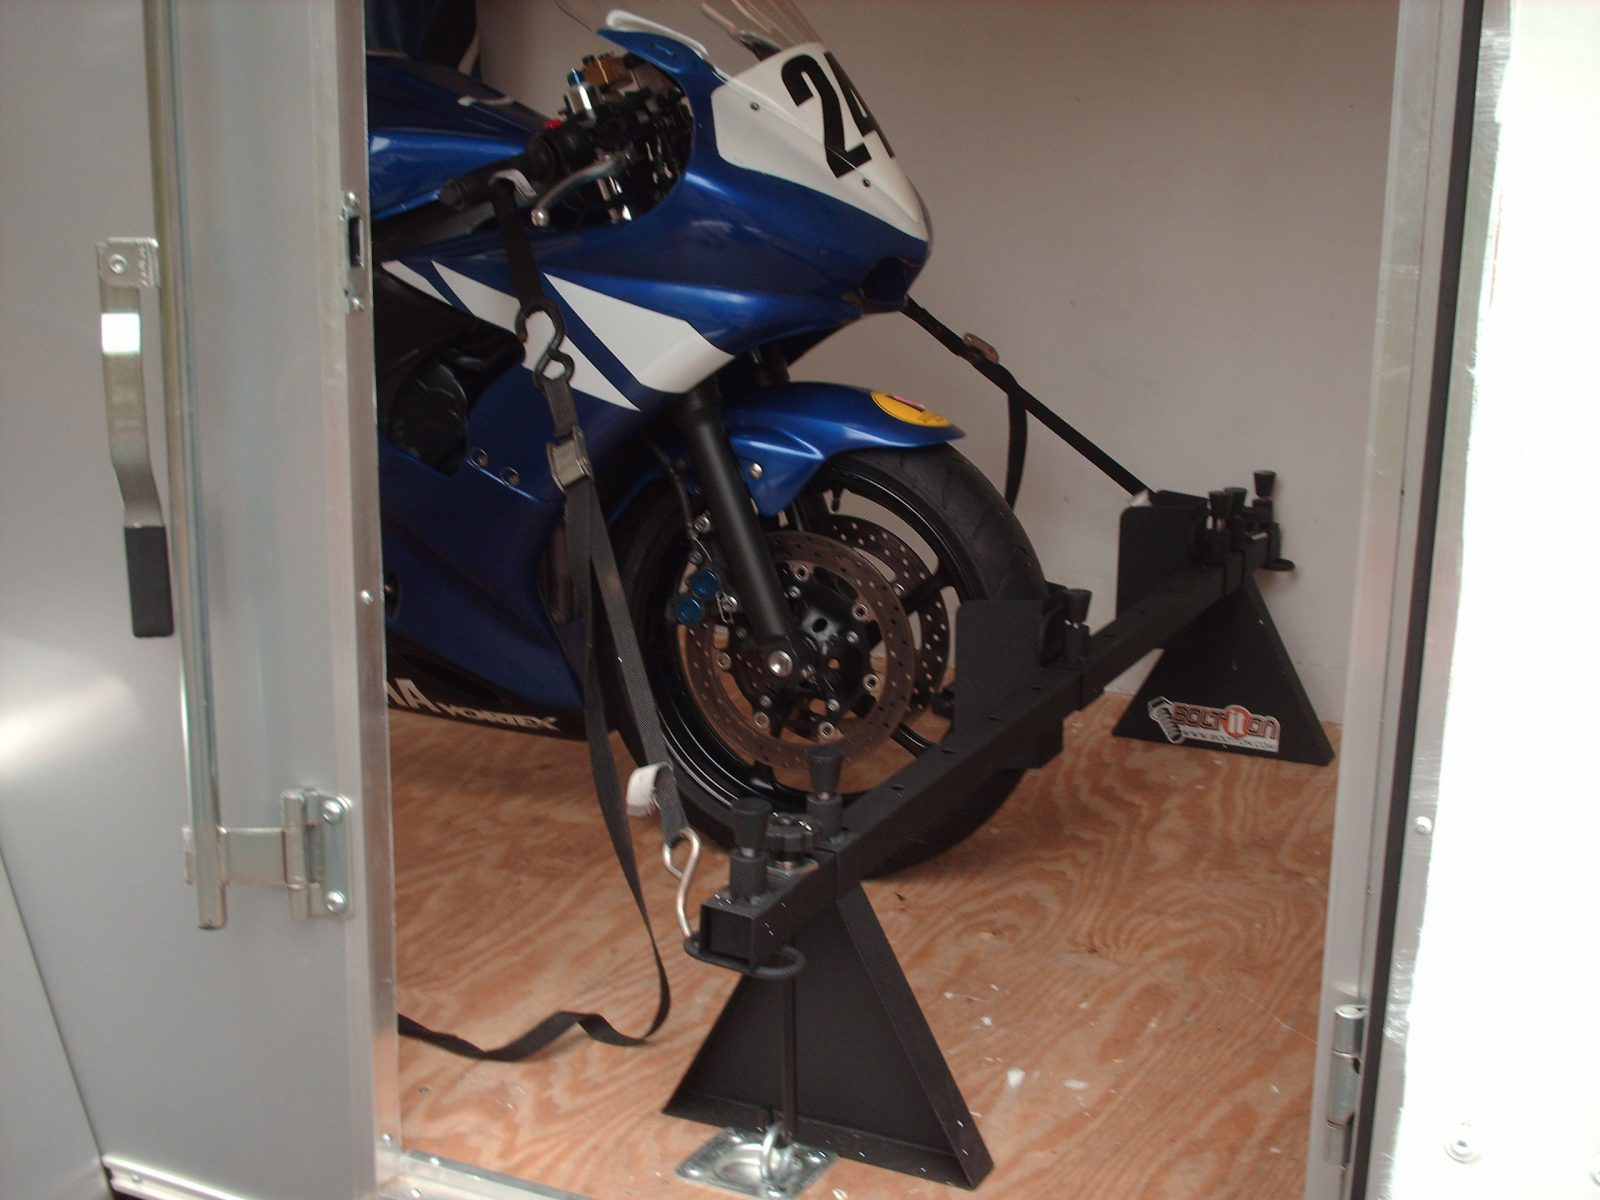 wheel chocks for street bikes